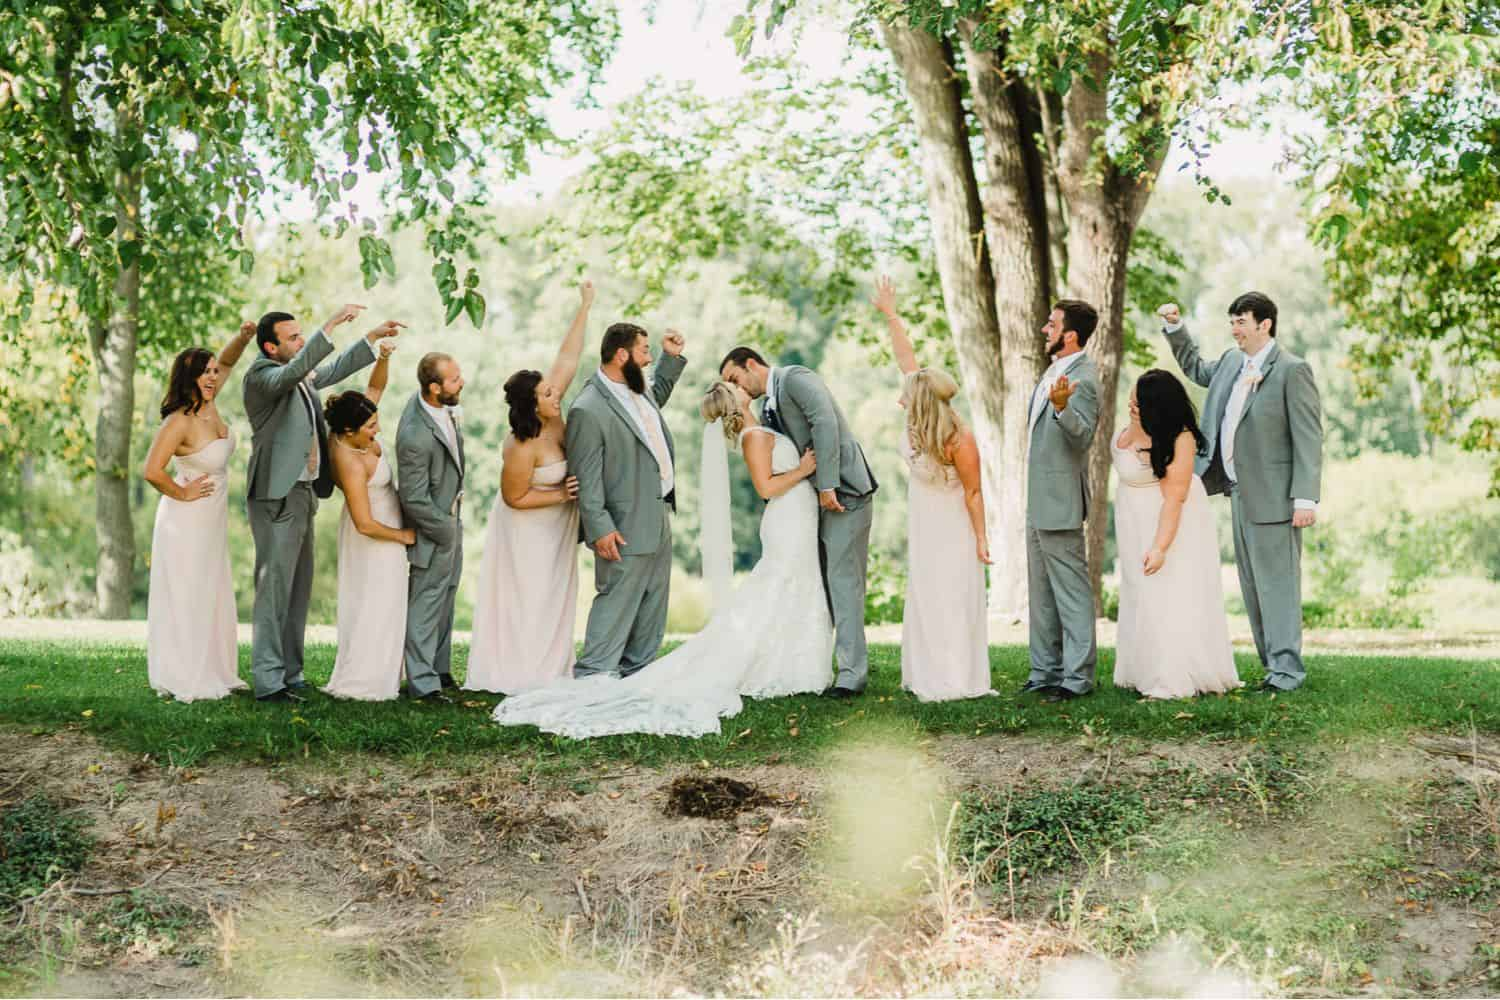 A wedding party poses with the bride and groom in the middle of their line-up kissing.